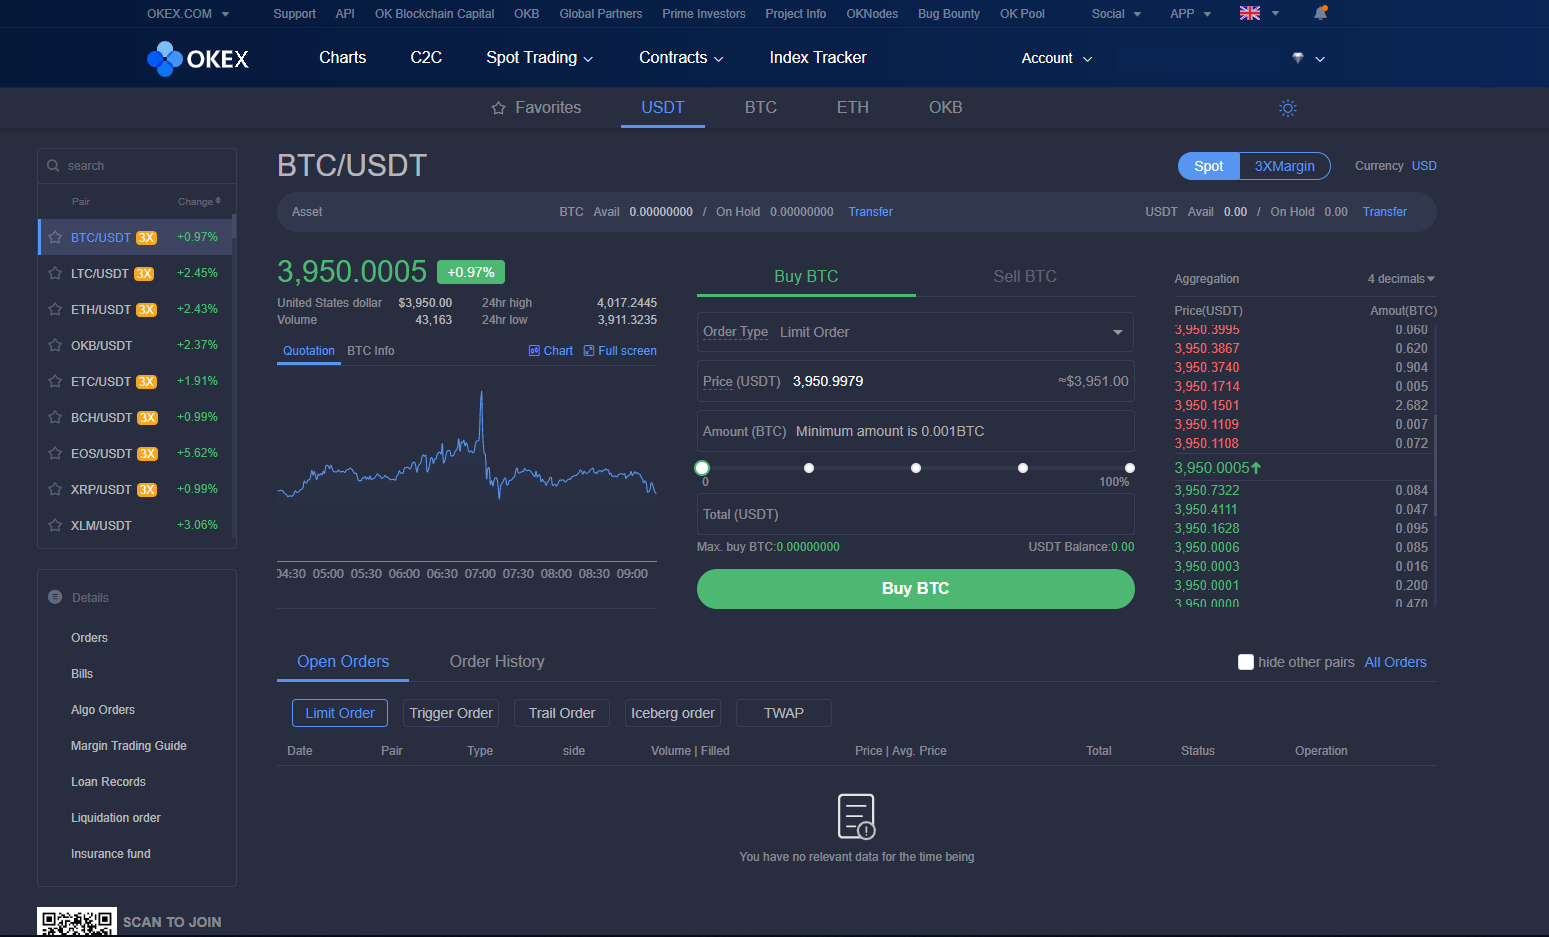 OKEX Trading View